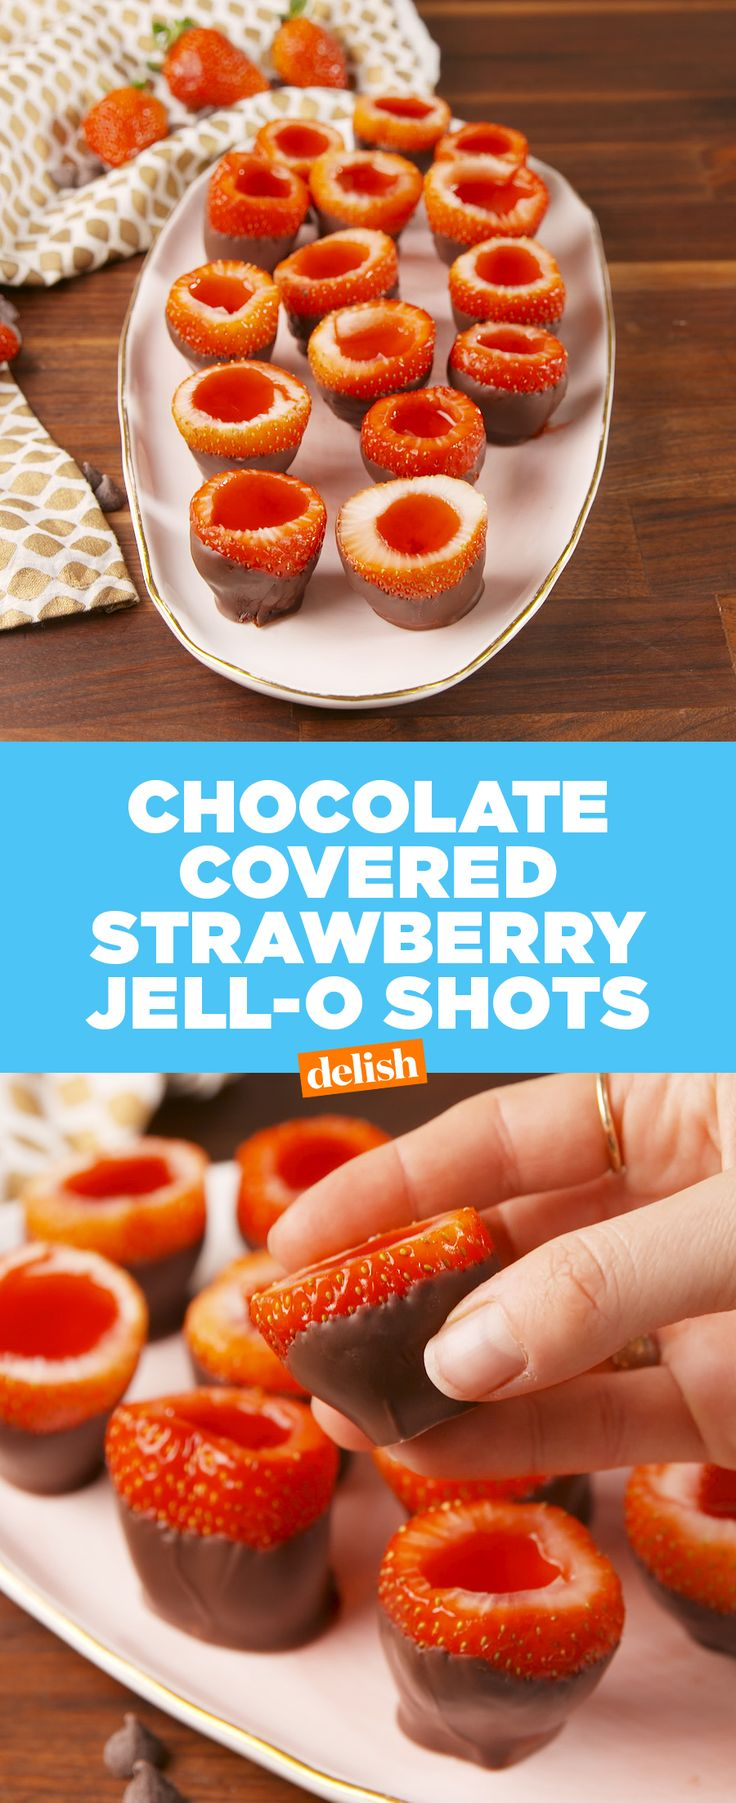 Chocolate Covered Strawberry Jell-O​ Shots